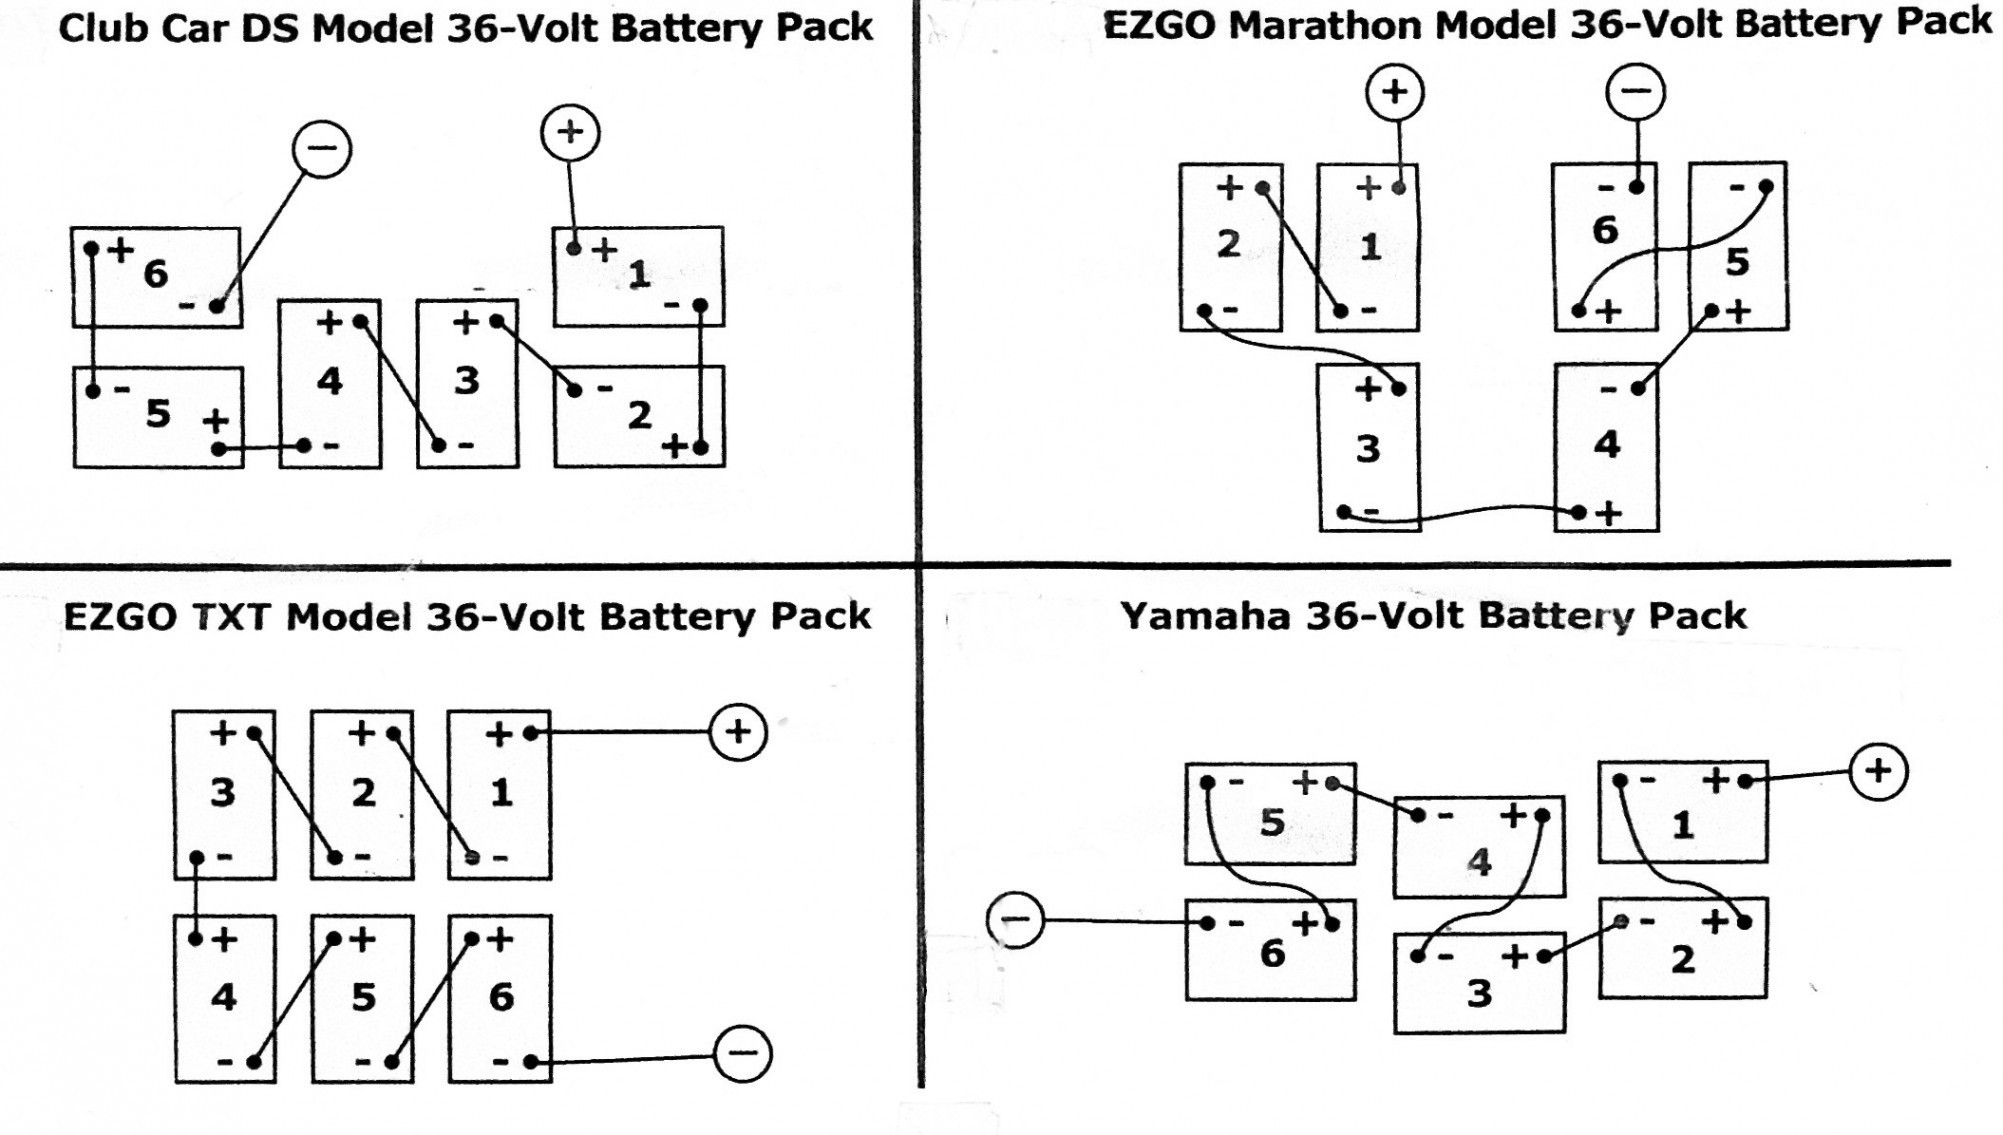 wiring diagram for ezgo electric golf cart nm 3011  ez go golf carts wiring diagram ez go golf cart wiring  ez go golf carts wiring diagram ez go